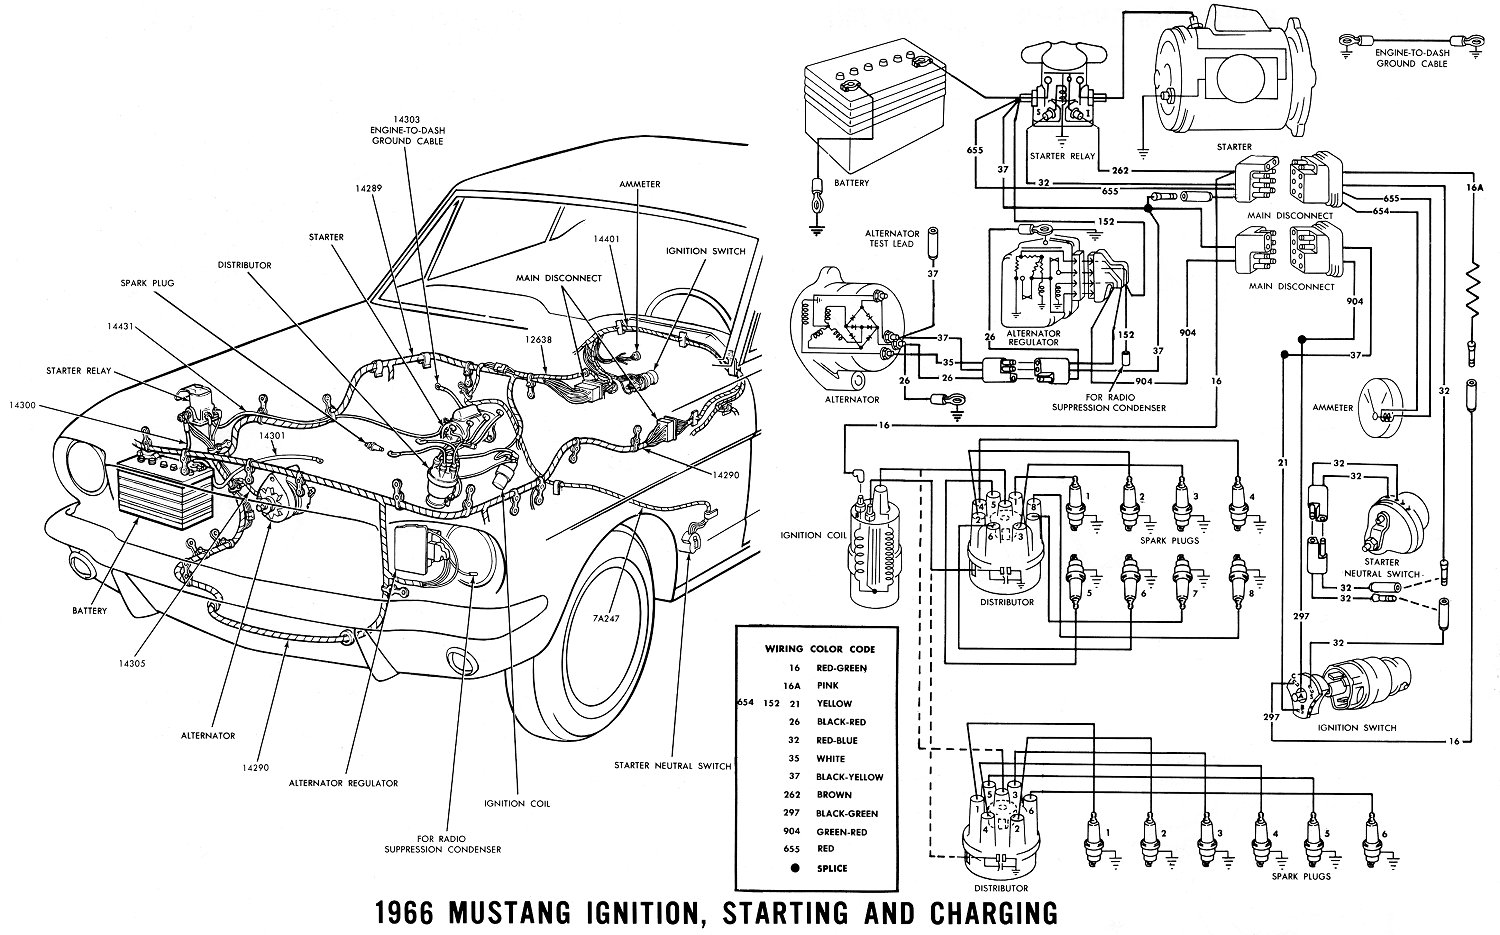 Cartoon Black And White Living Room together with Saab 2002 9 3 Engine Diagram Get Free Image moreover Engine Diagram 96 S10 2 2l moreover 96 Ford Ranger Coil Pack Wiring Diagram together with Ford F 250 Transfer Case Parts. on subaru coil pack wiring diagram